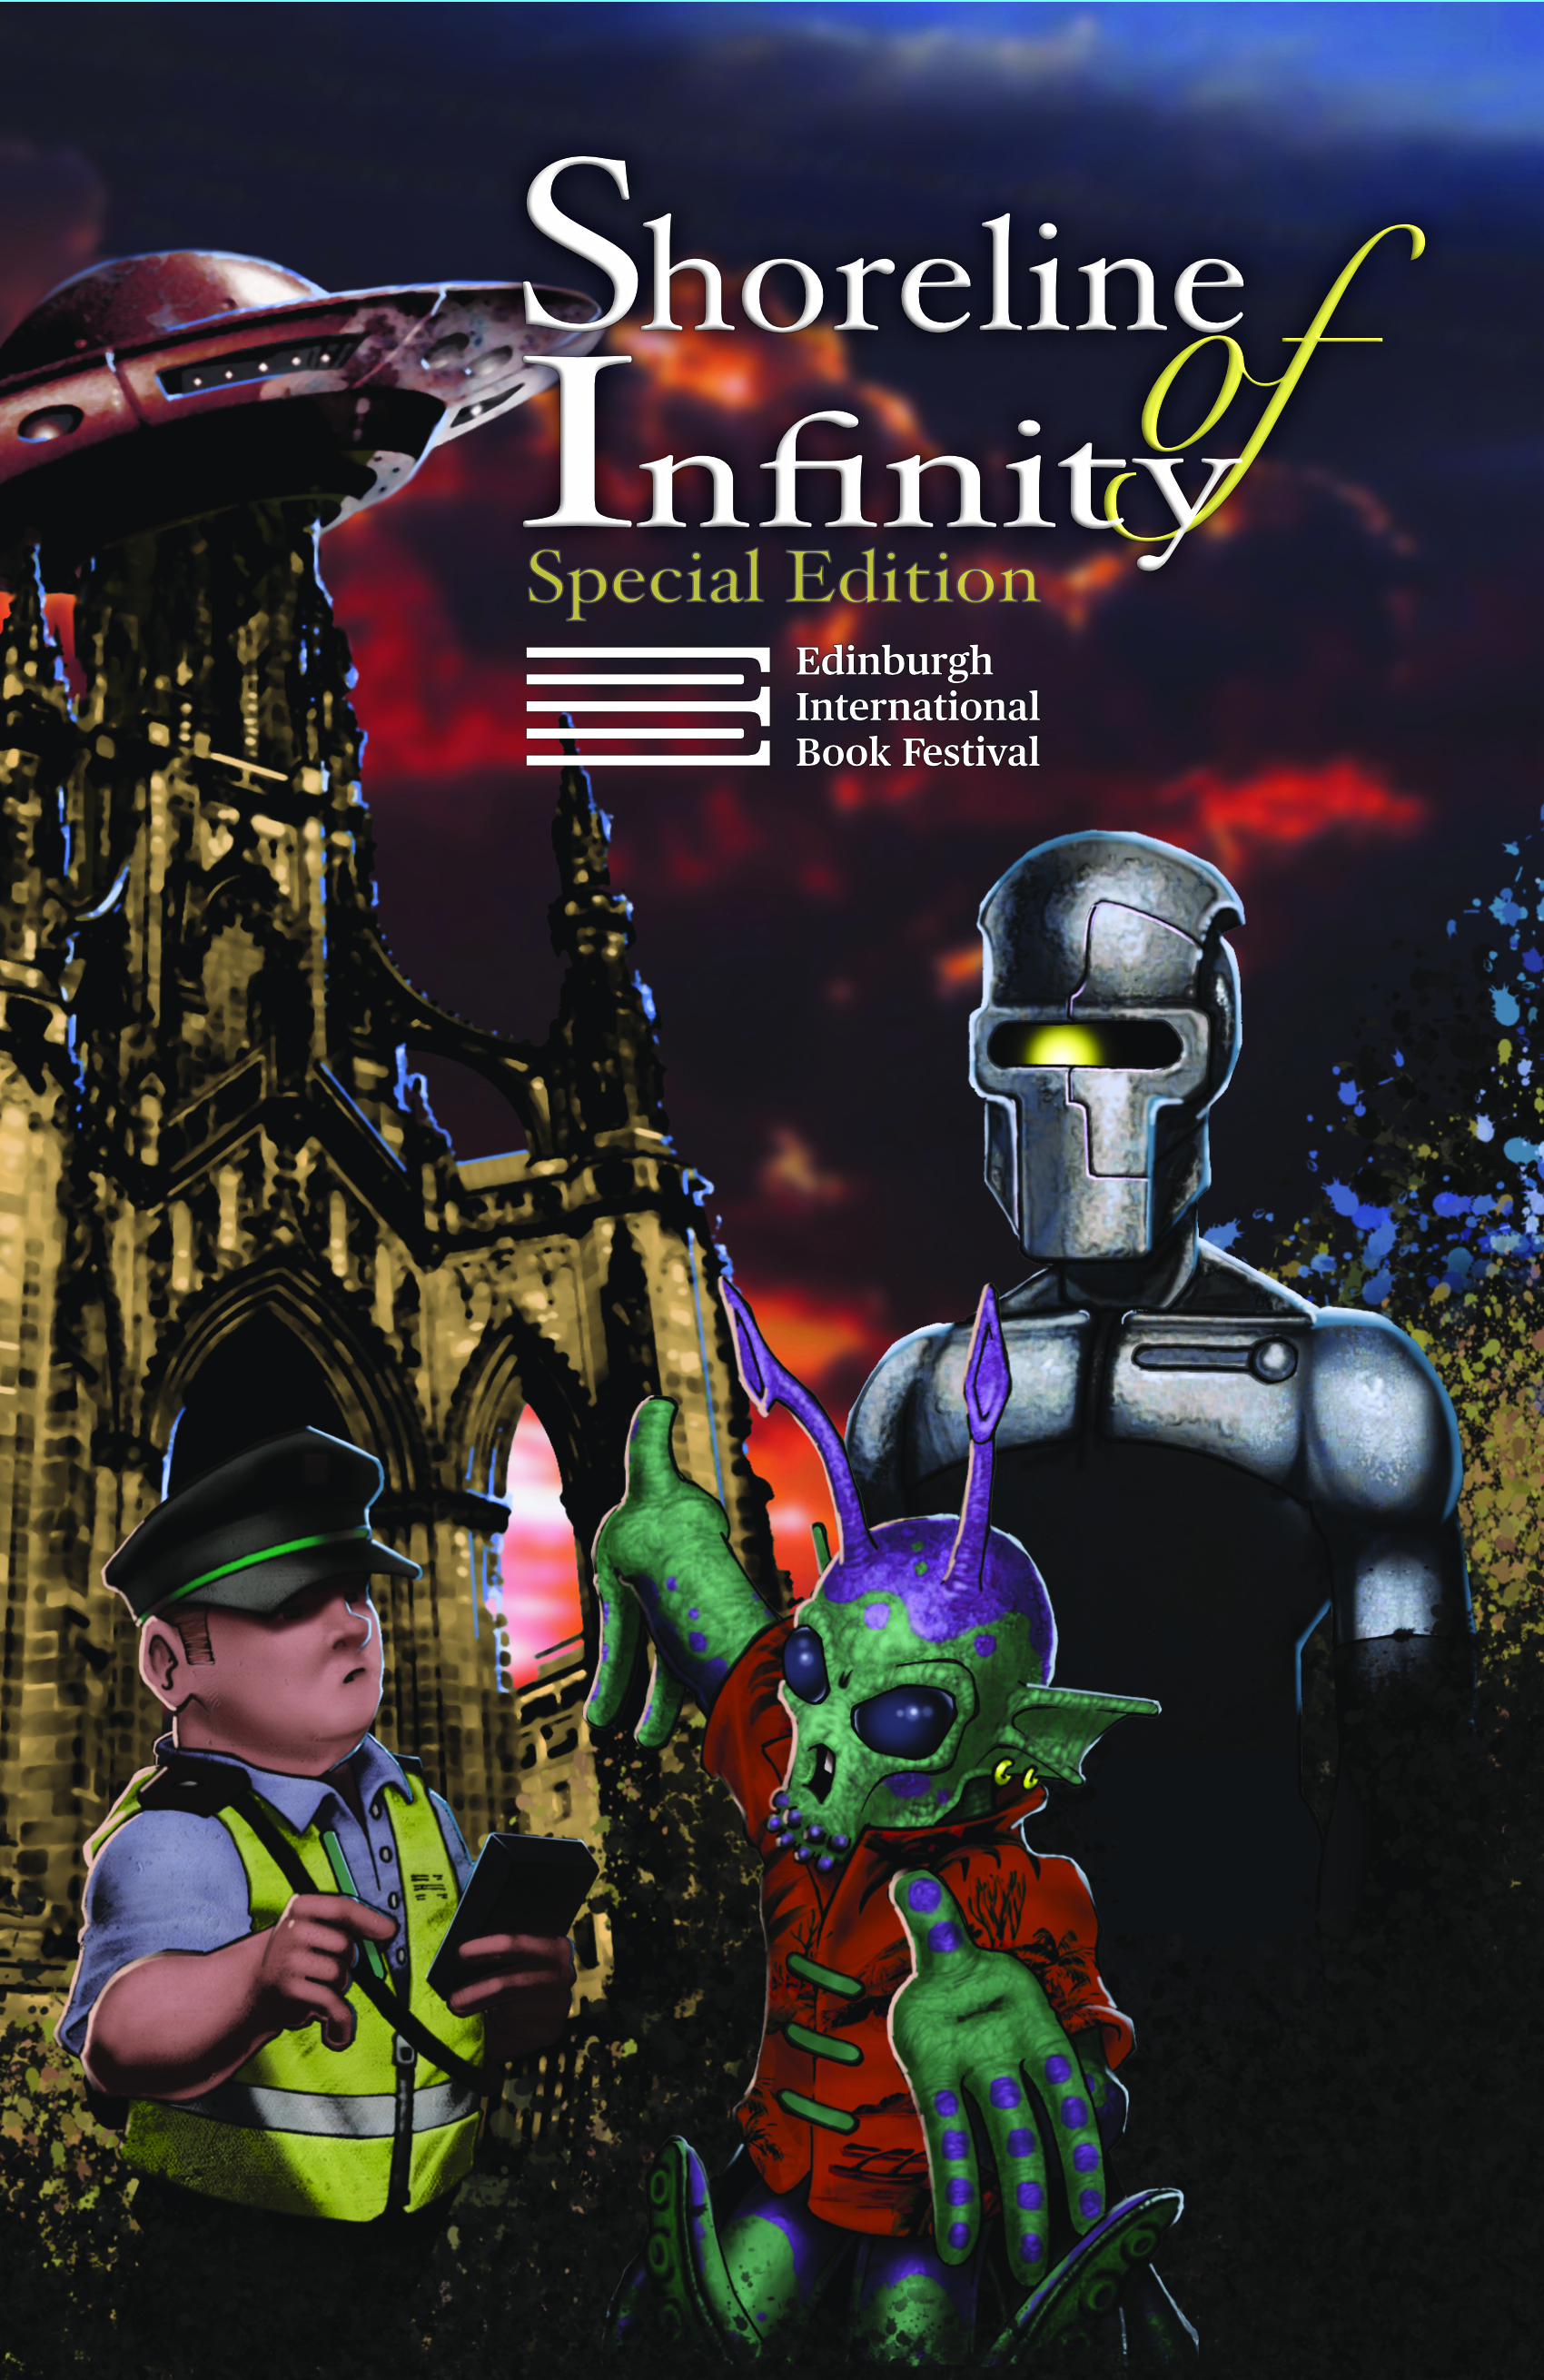 Shoreline of Infinity EIBF Special Edition Cover by Stuart Beel